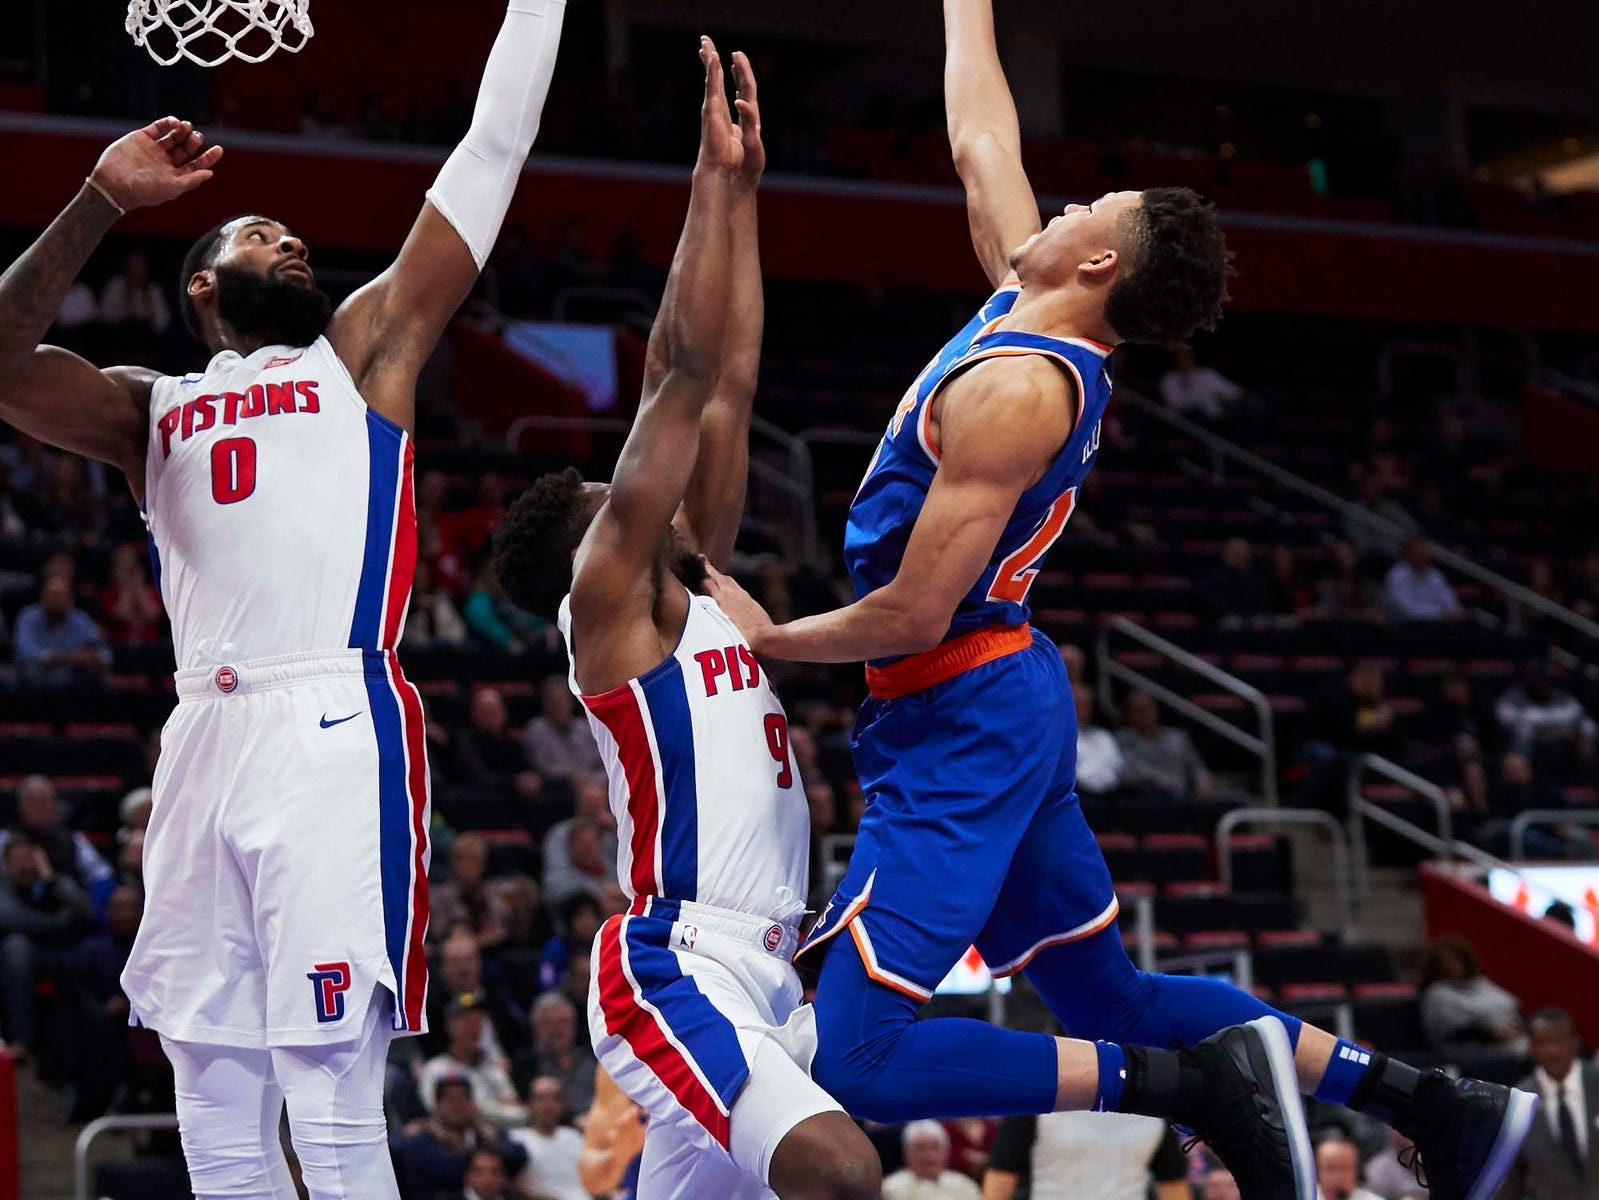 New York Knicks forward Kevin Knox (20) shoots on Detroit Pistons guard Langston Galloway (9) and center Andre Drummond (0) in the second half at Little Caesars Arena.